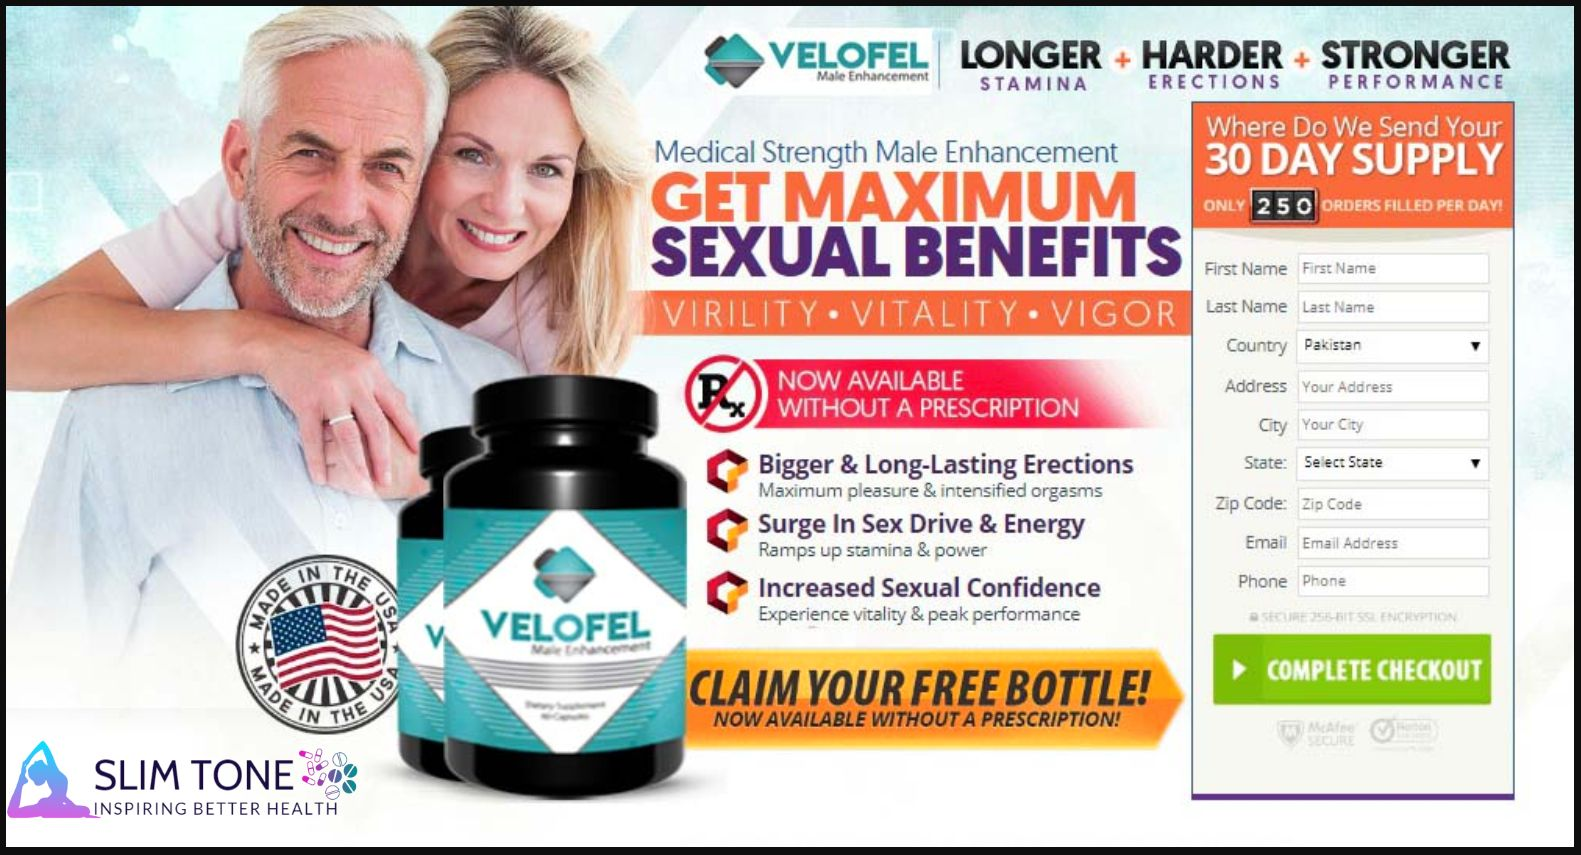 Velofel Male Enhancemen Of South Africa Rigorx Get Result Shortly Reviews In 2020 Male Enhancement Enhancement Pills Enhancement